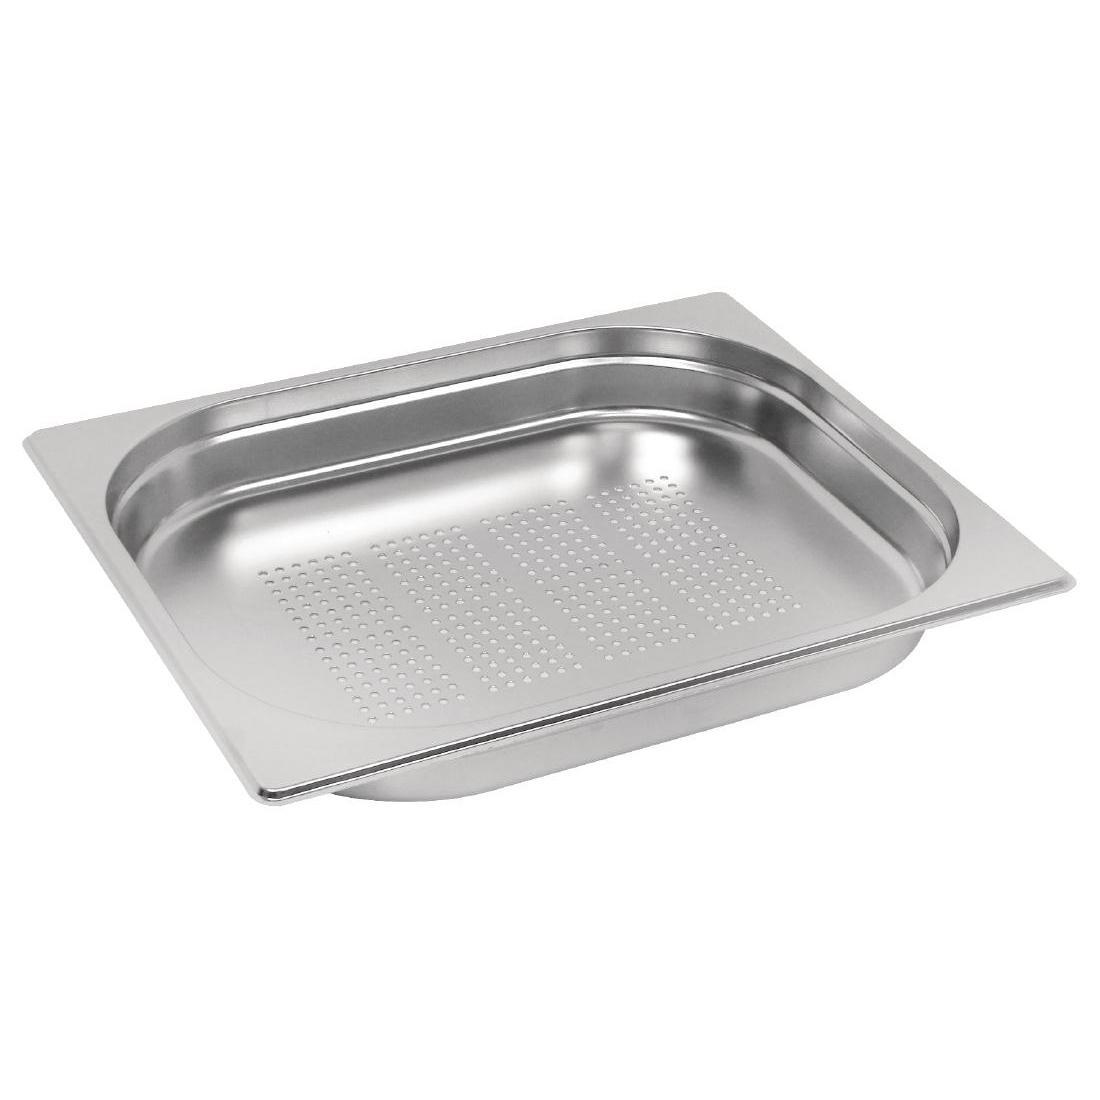 Vogue Stainless Steel Perforated 1/2 Gastronorm Pan 40mm - Each - E698